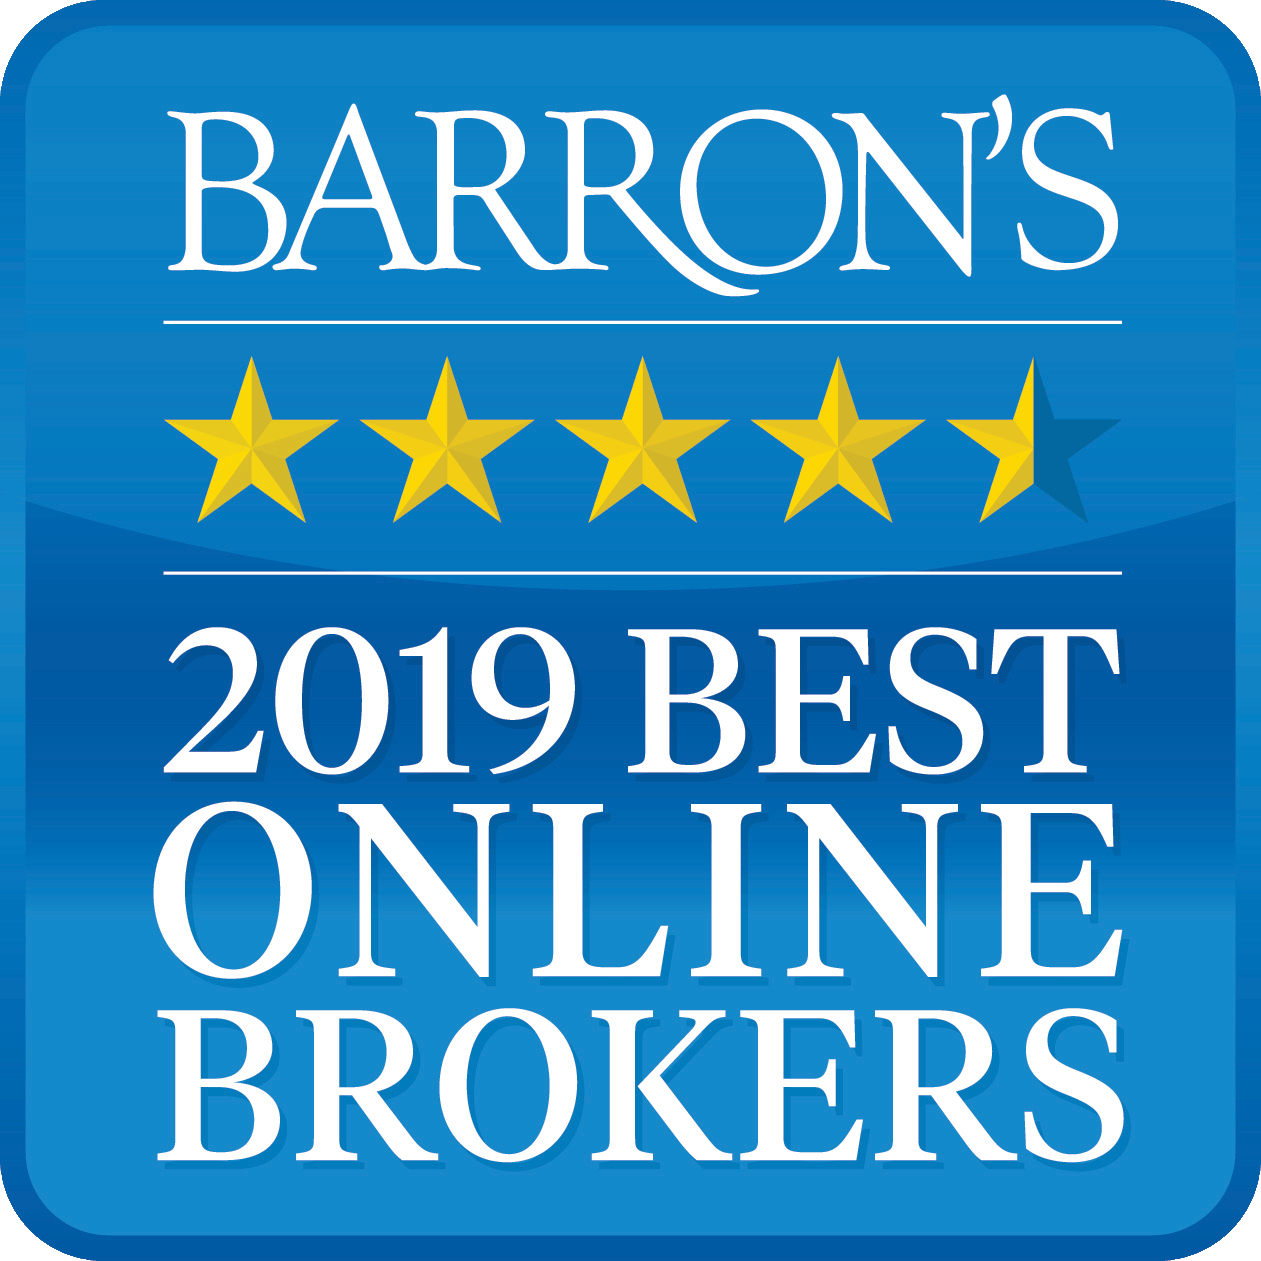 Barron's Best Oline Broker Award